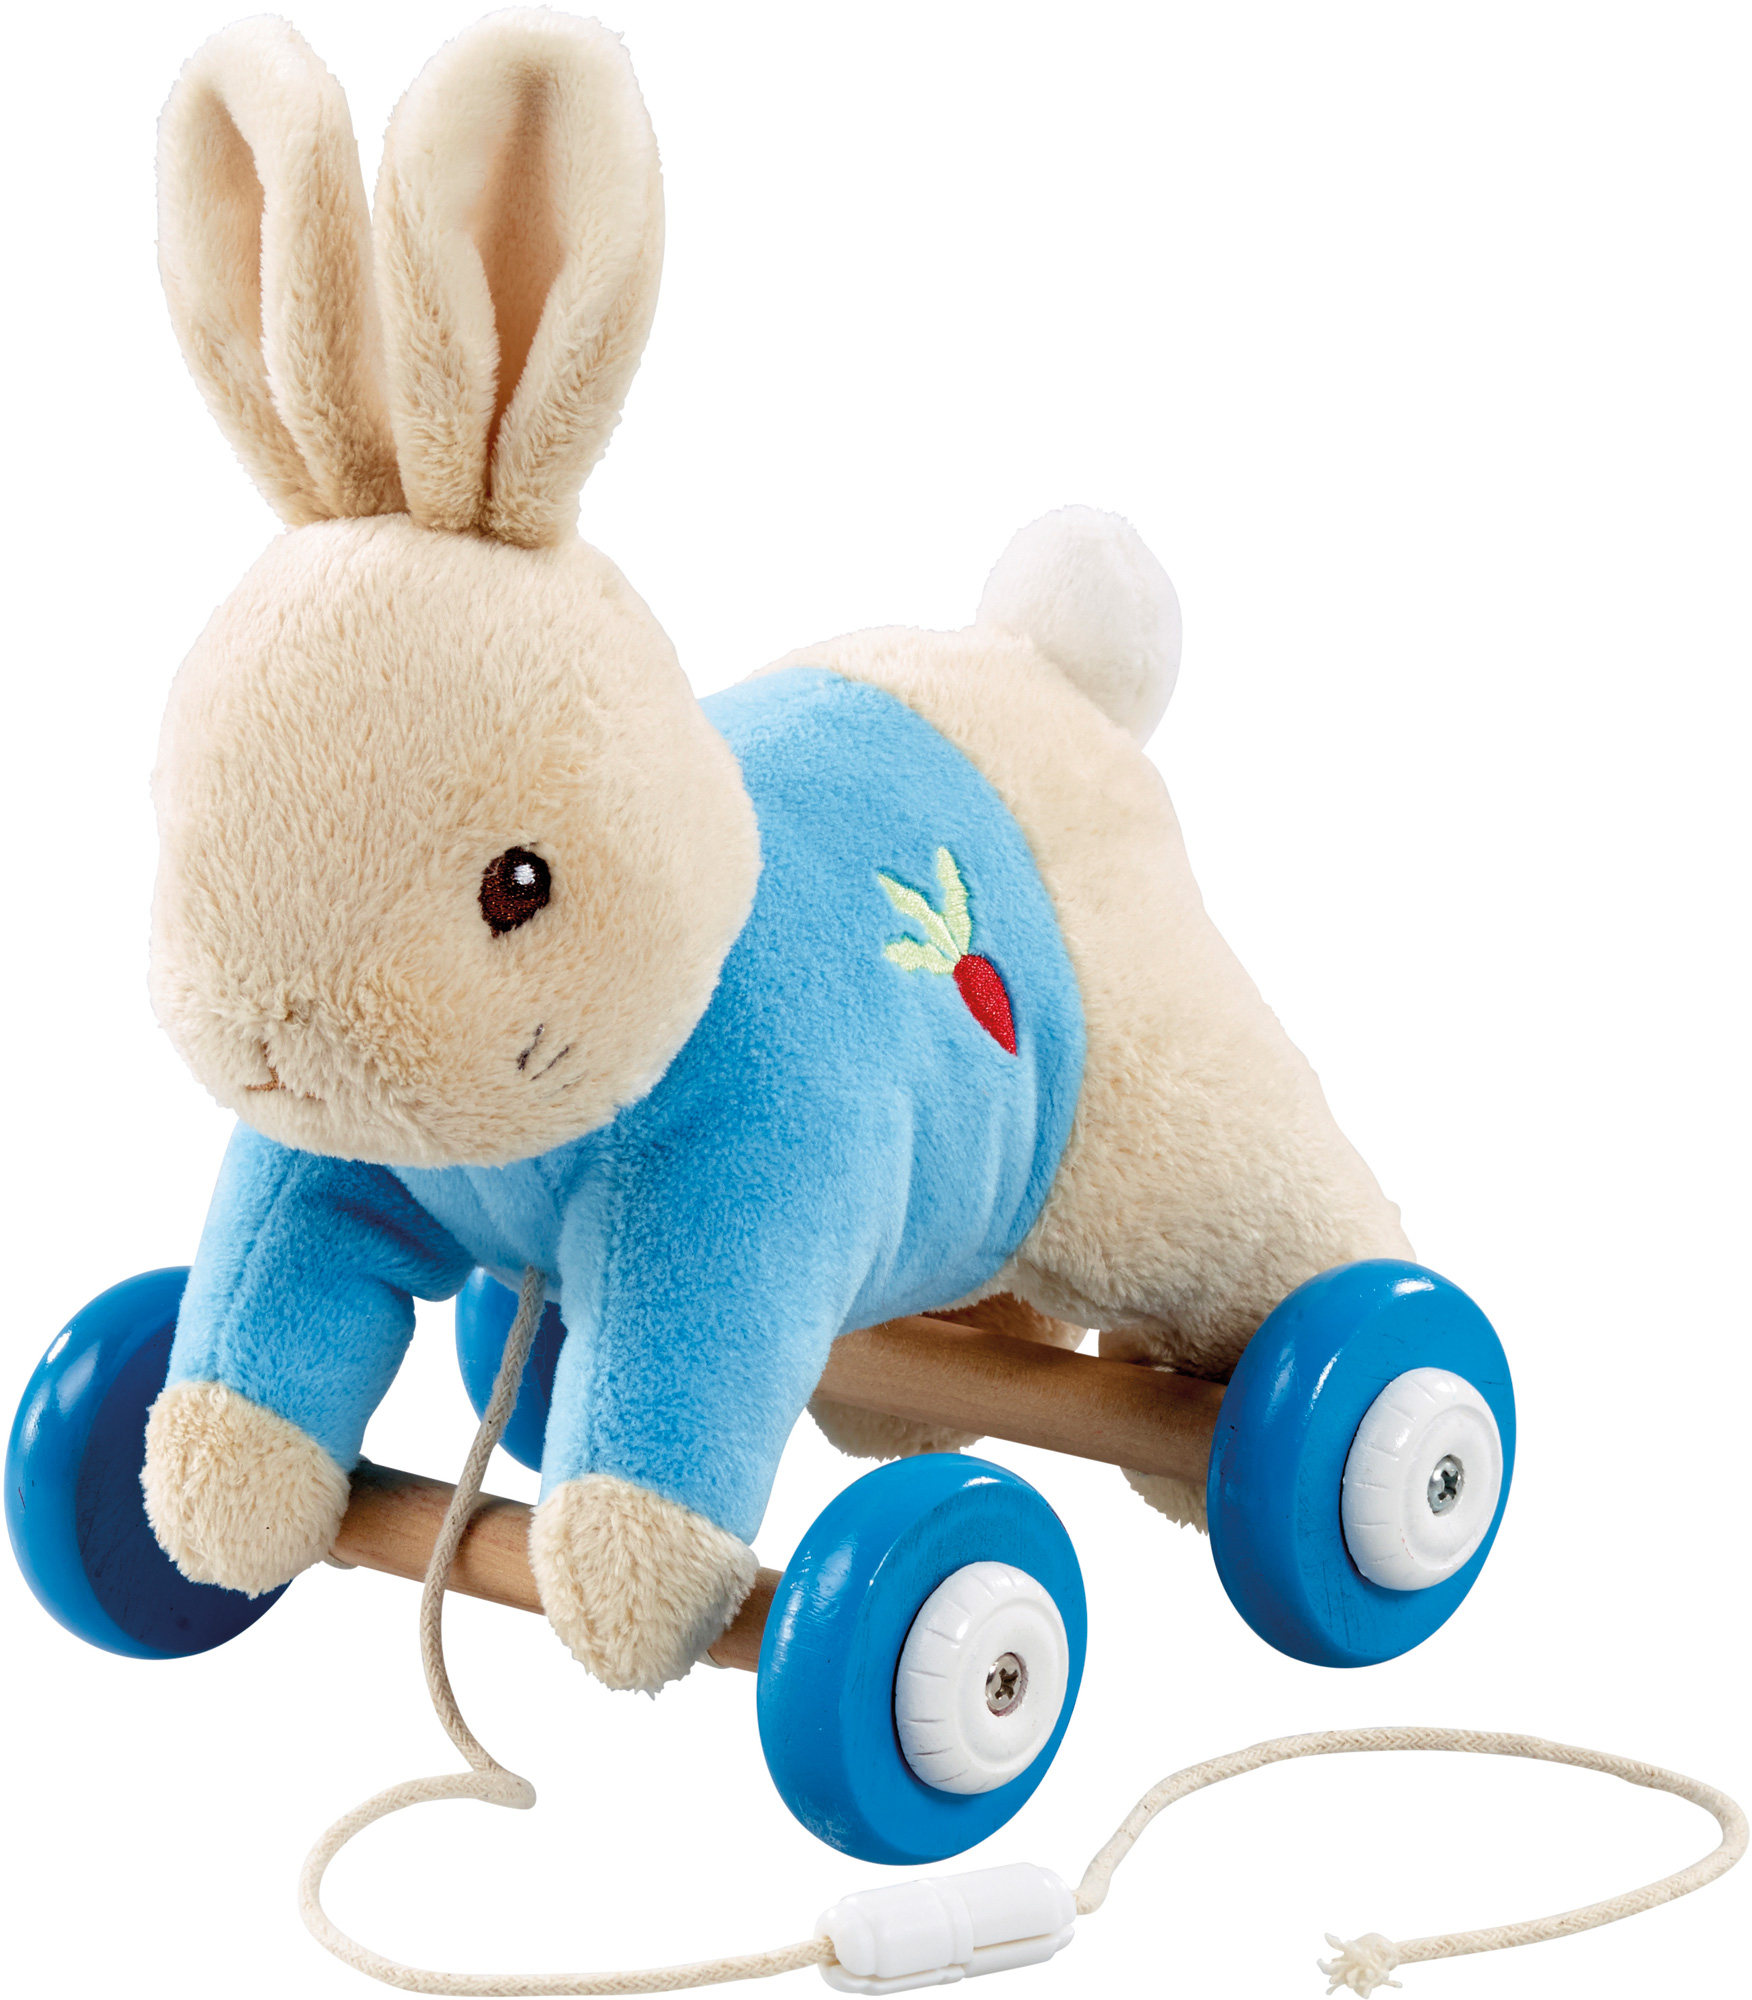 Rainbow Designs PETER RABBIT PLUSH/WOOD PULL ALONG TOY Baby/Toddler ...